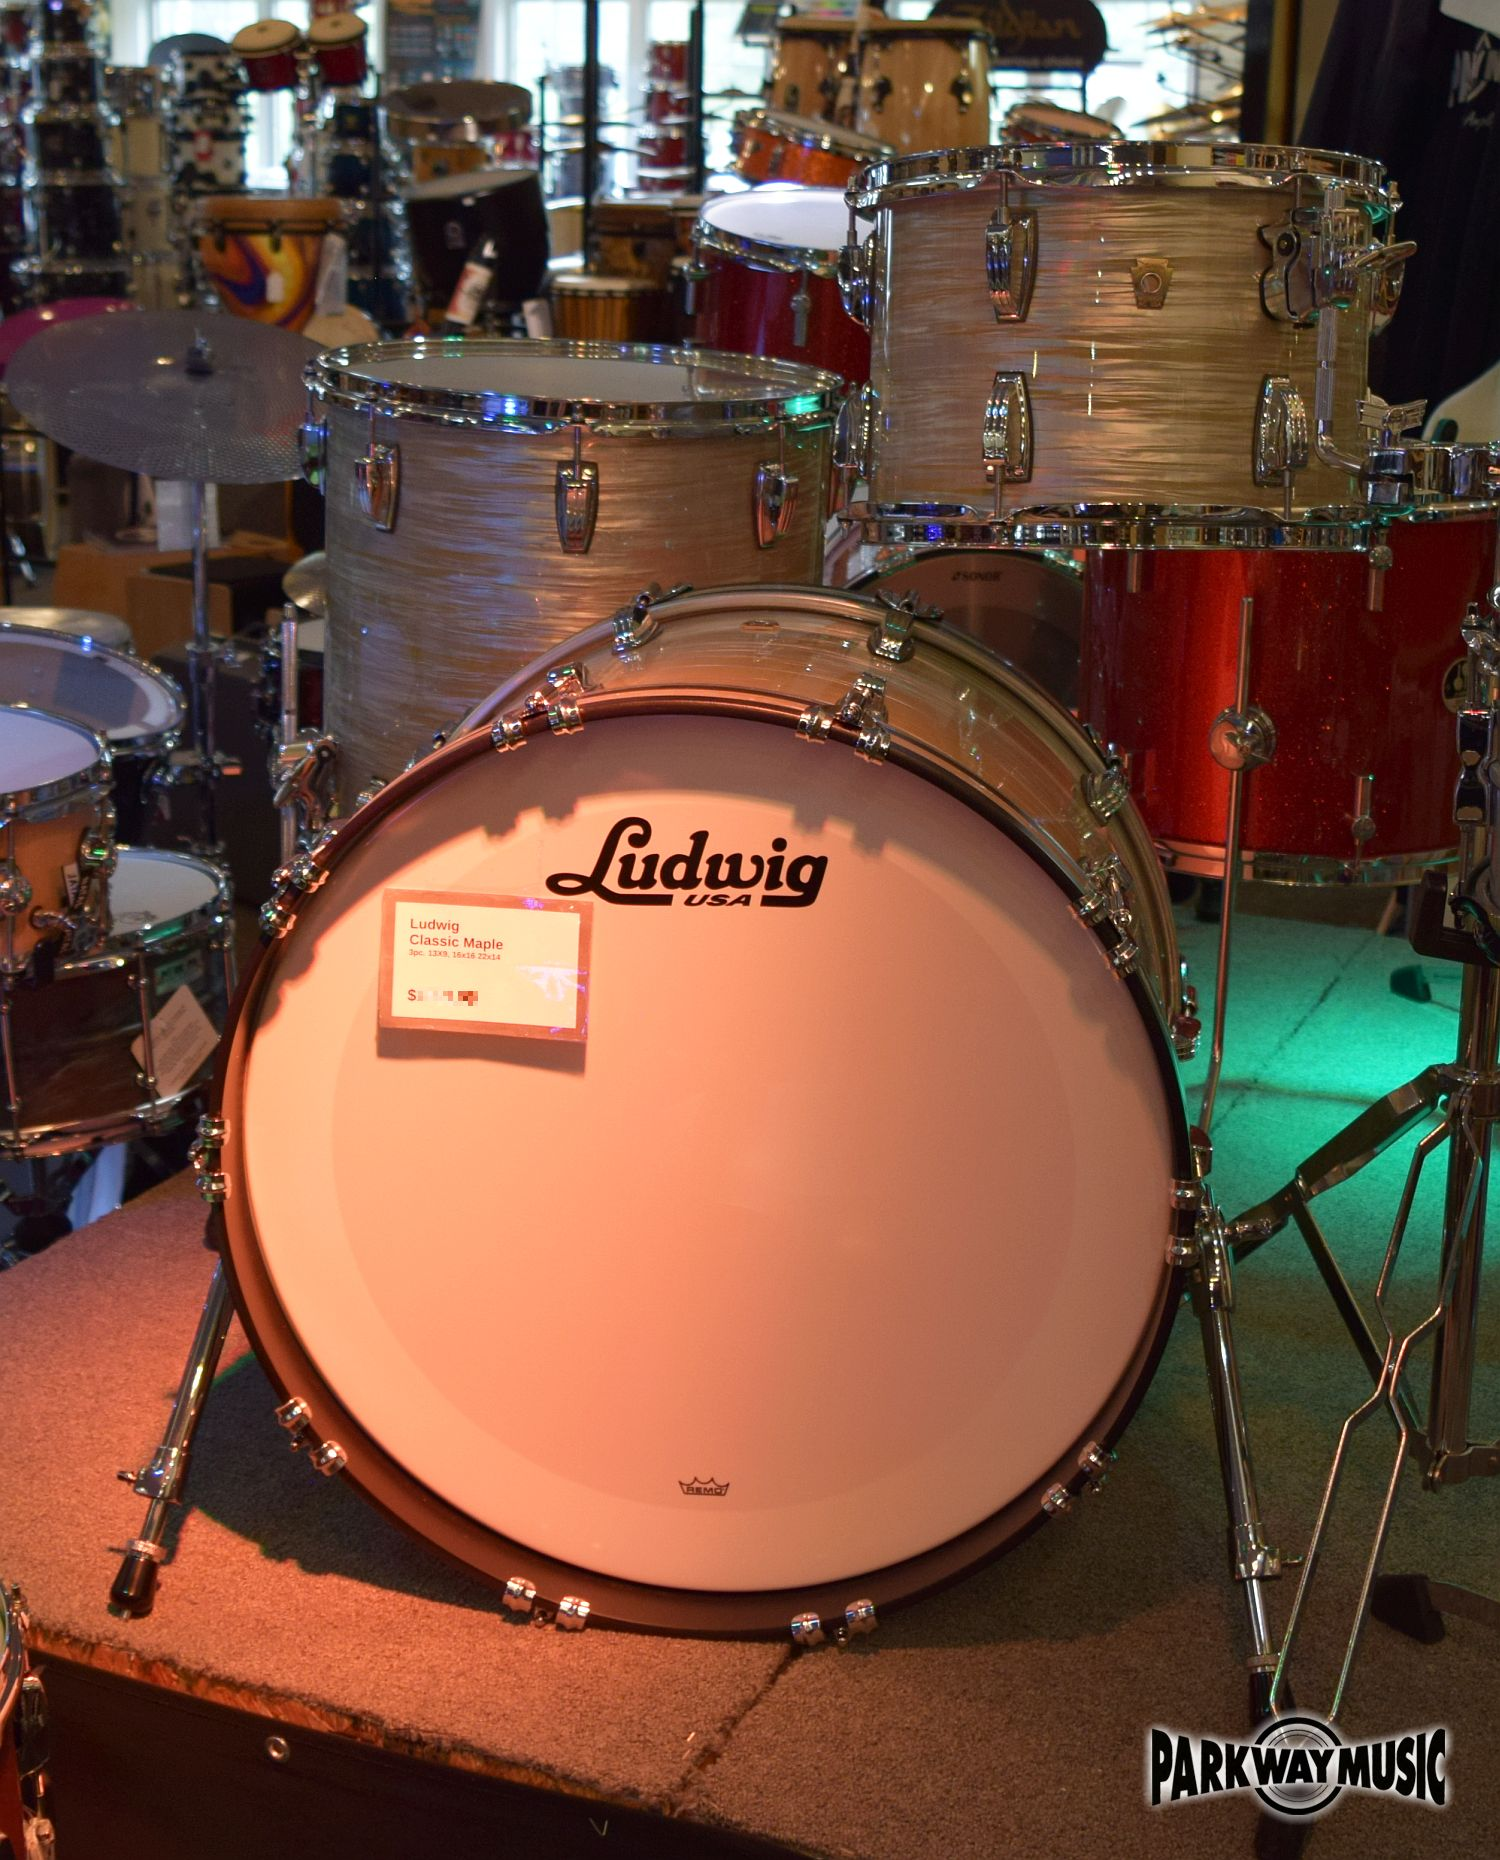 Ludwig Classic Maple FAB 3 Pc shell pack in Olive Oyster